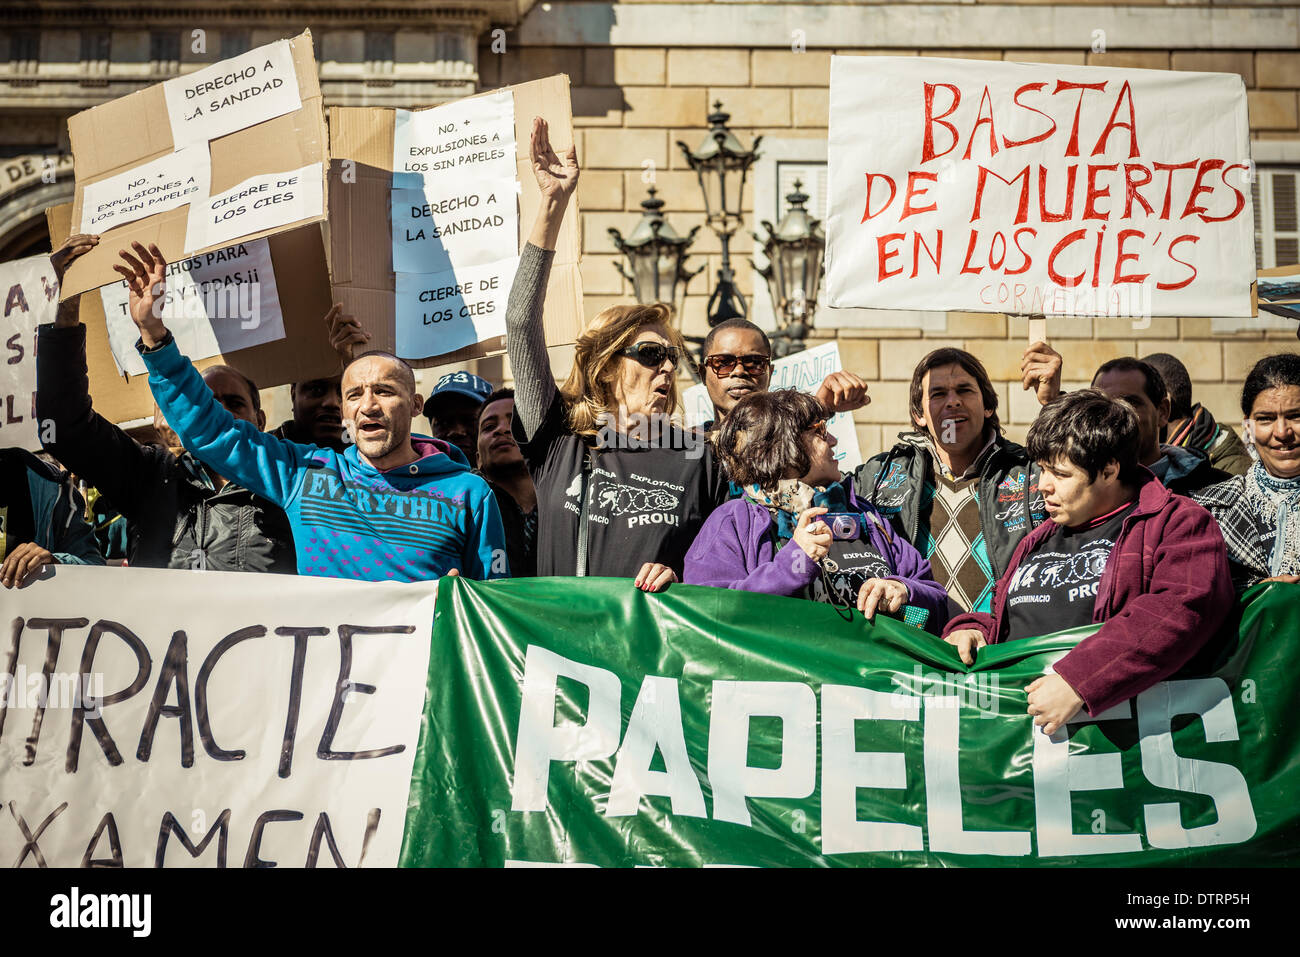 Barcelona, Spain. February 23rd, 2014: Immigrants holding placards concentrate for immigration rights and papers Stock Photo